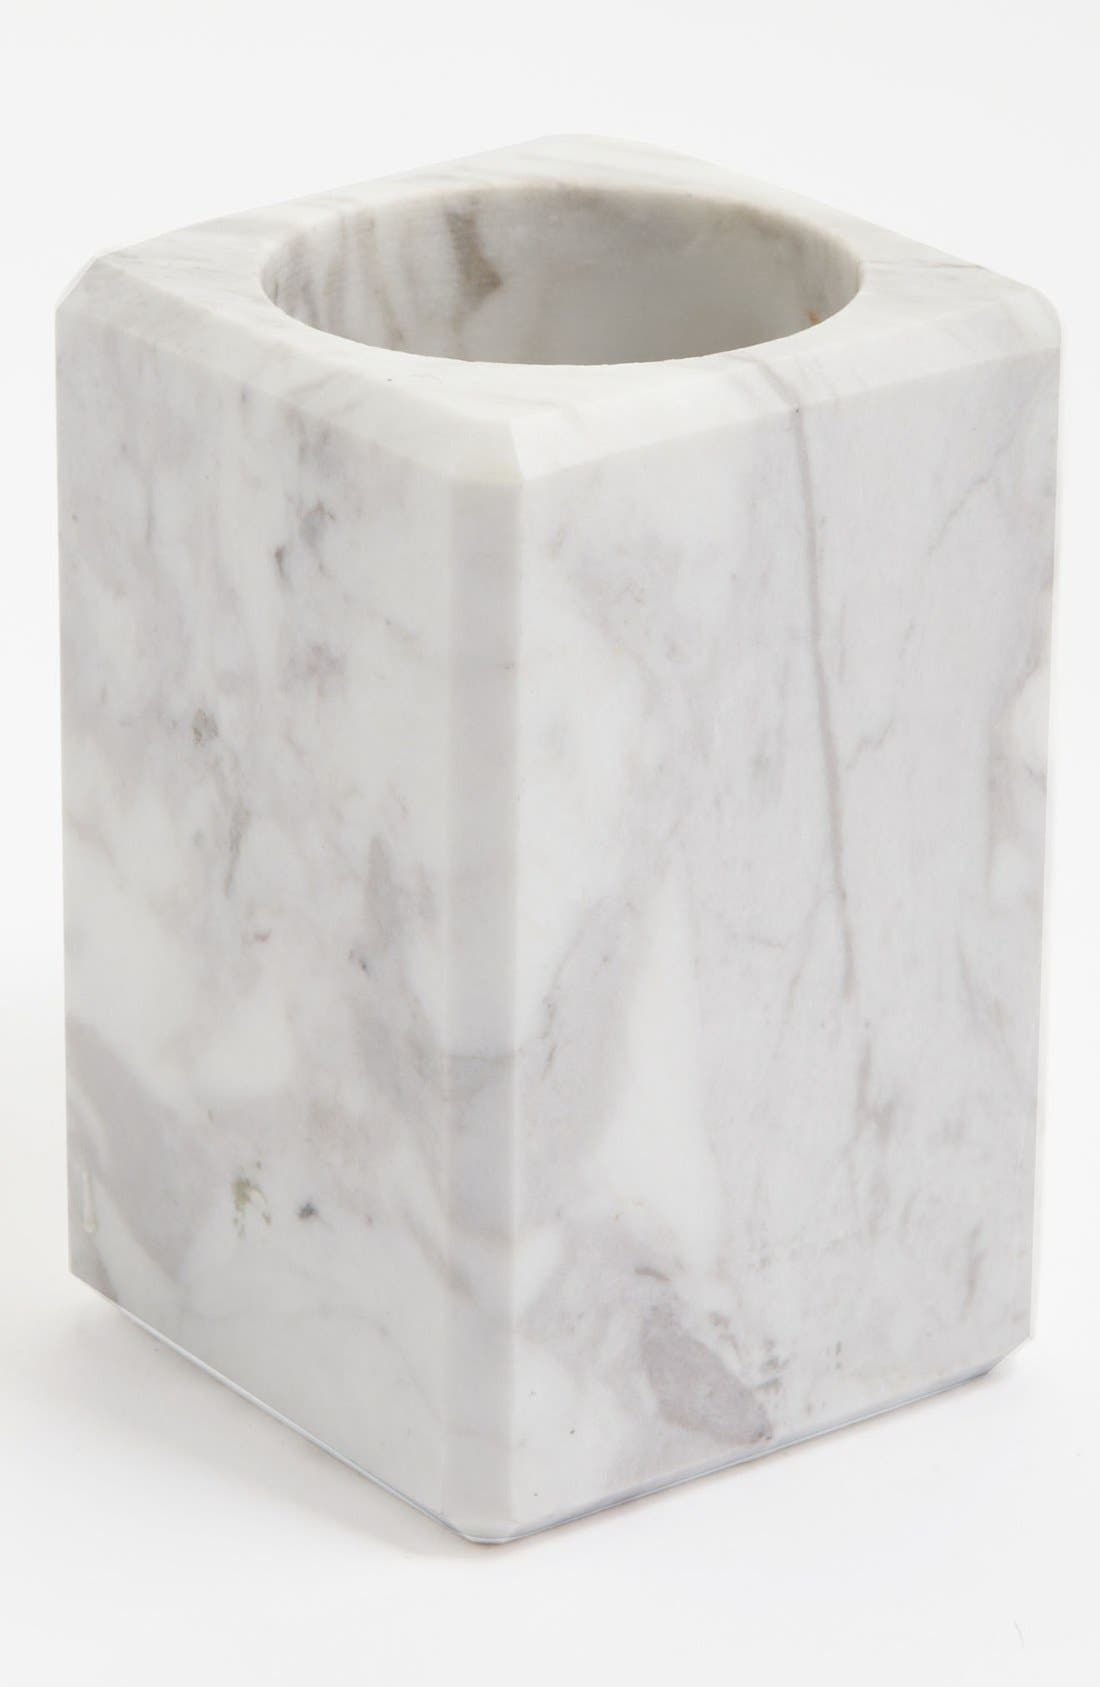 Waterworks Studio 'Luna' White Marble Tumbler (Online Only)